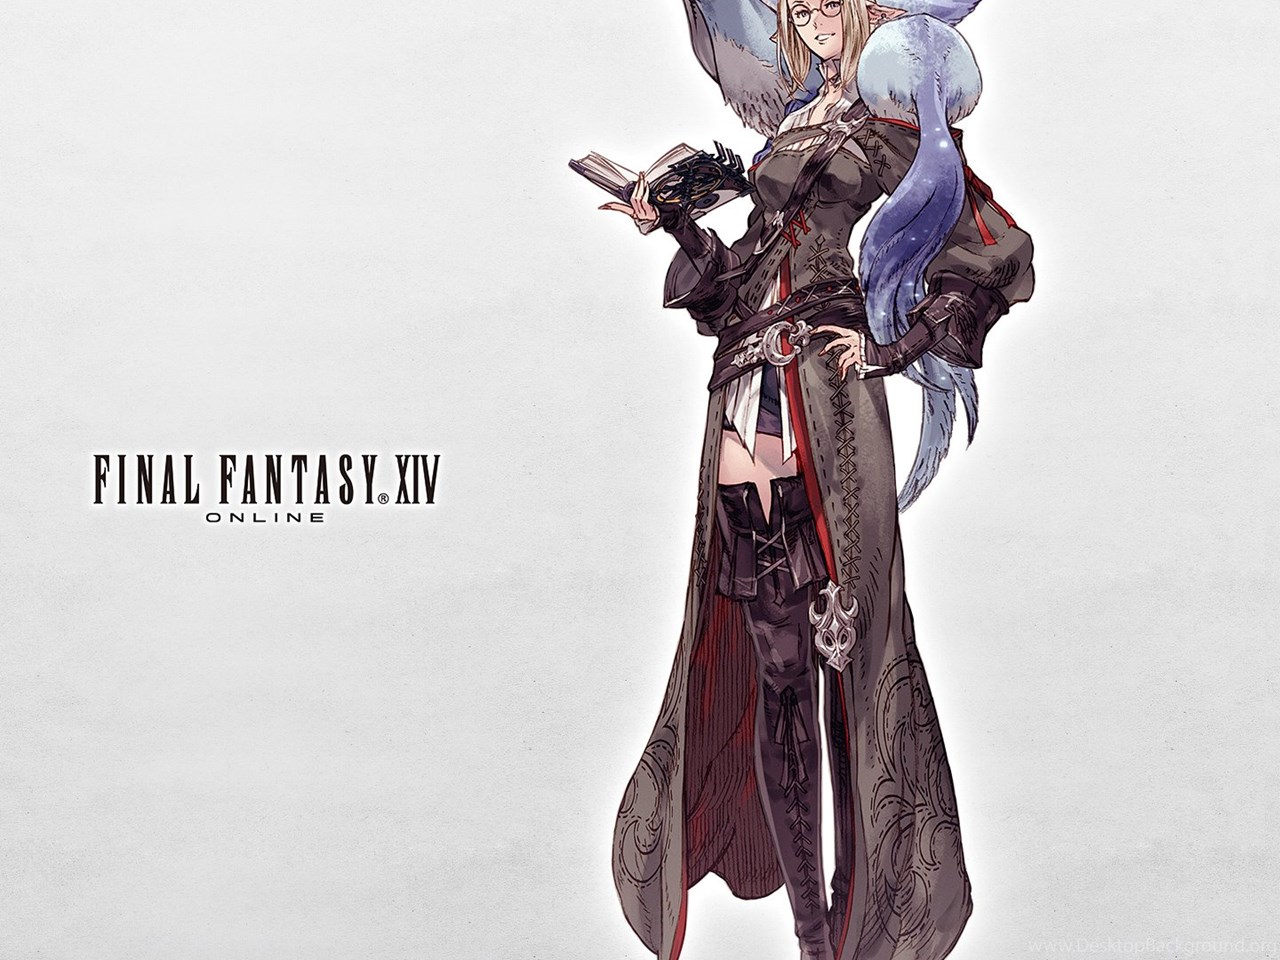 New FFXIV Fan Site Kit Released With Classes And Minions For